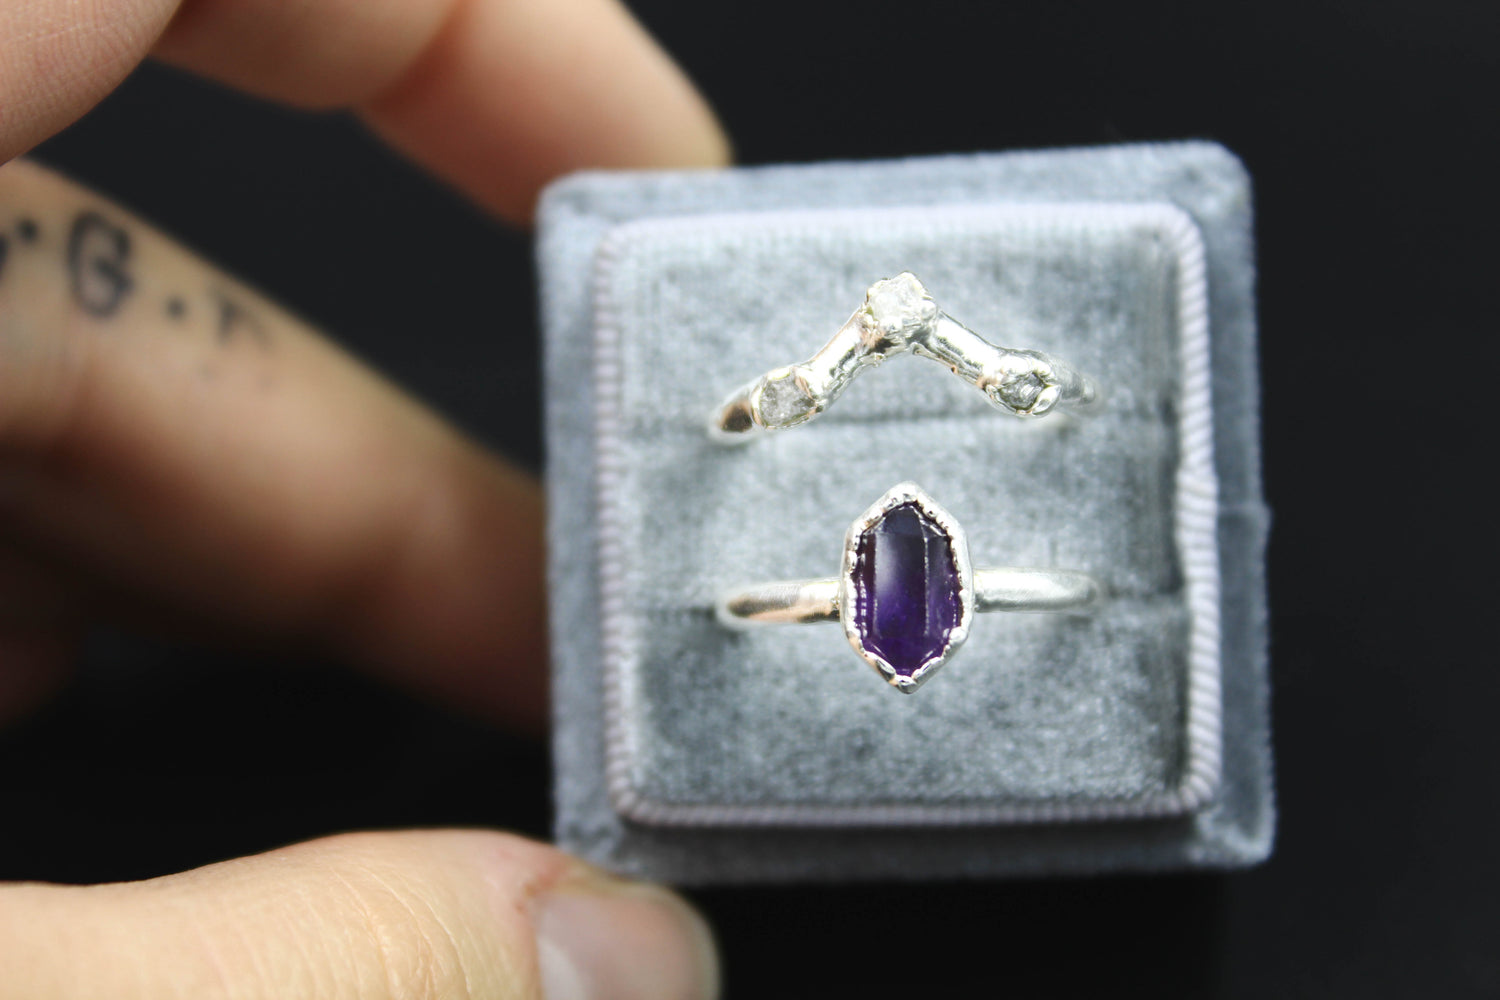 Amethyst engagement ring raw diamond wedding band the fox and stone bohemian jewelry